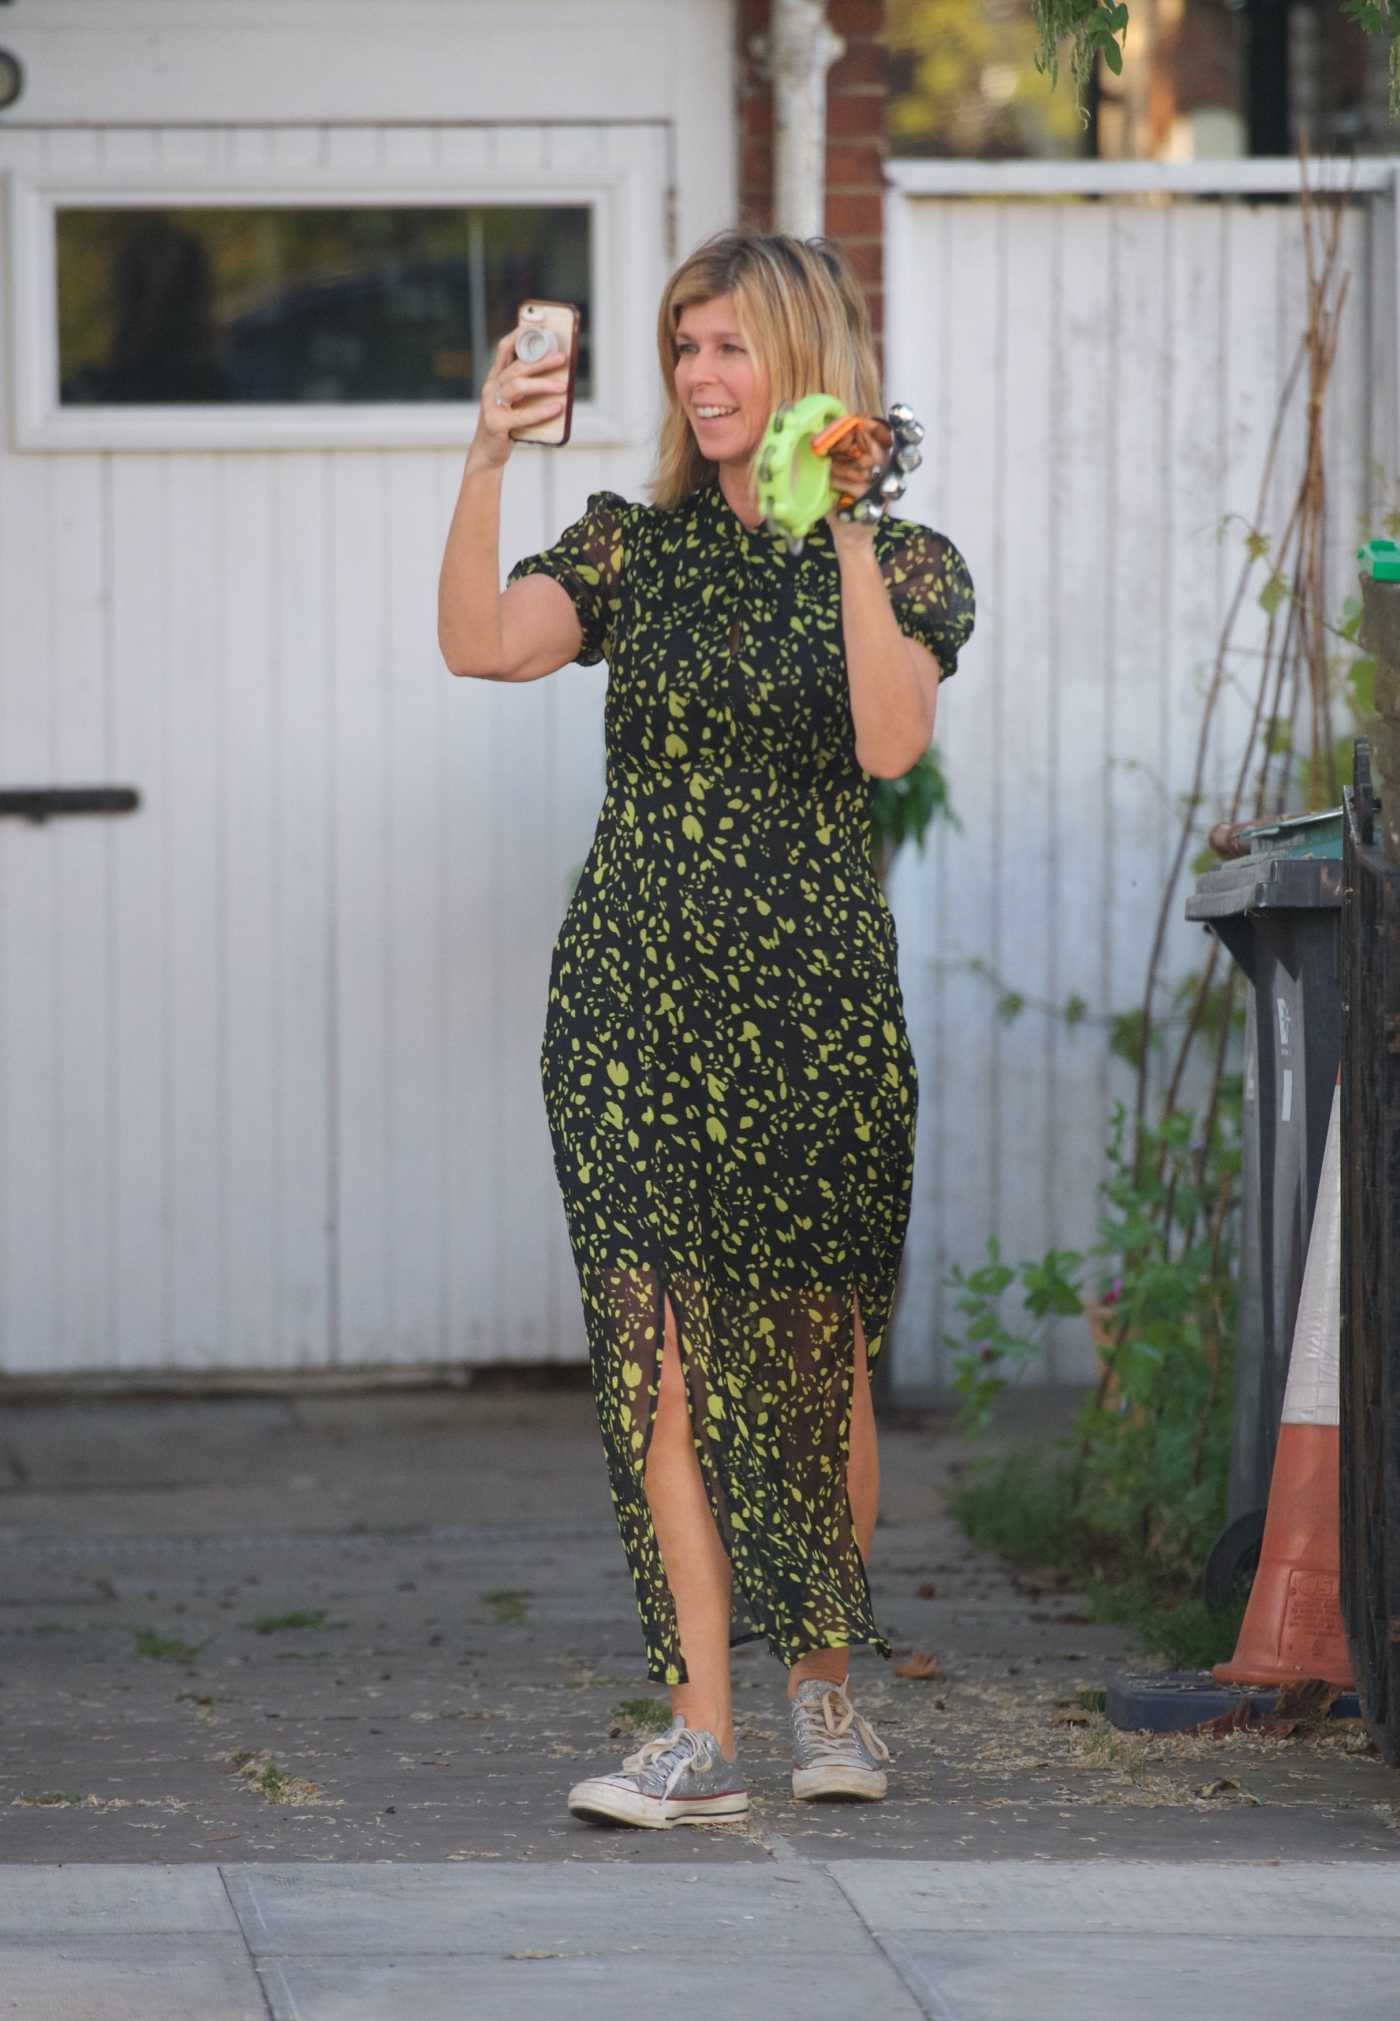 Kate Garraway in a Black Floral Dress Was Seen Out in London 05/23/2020